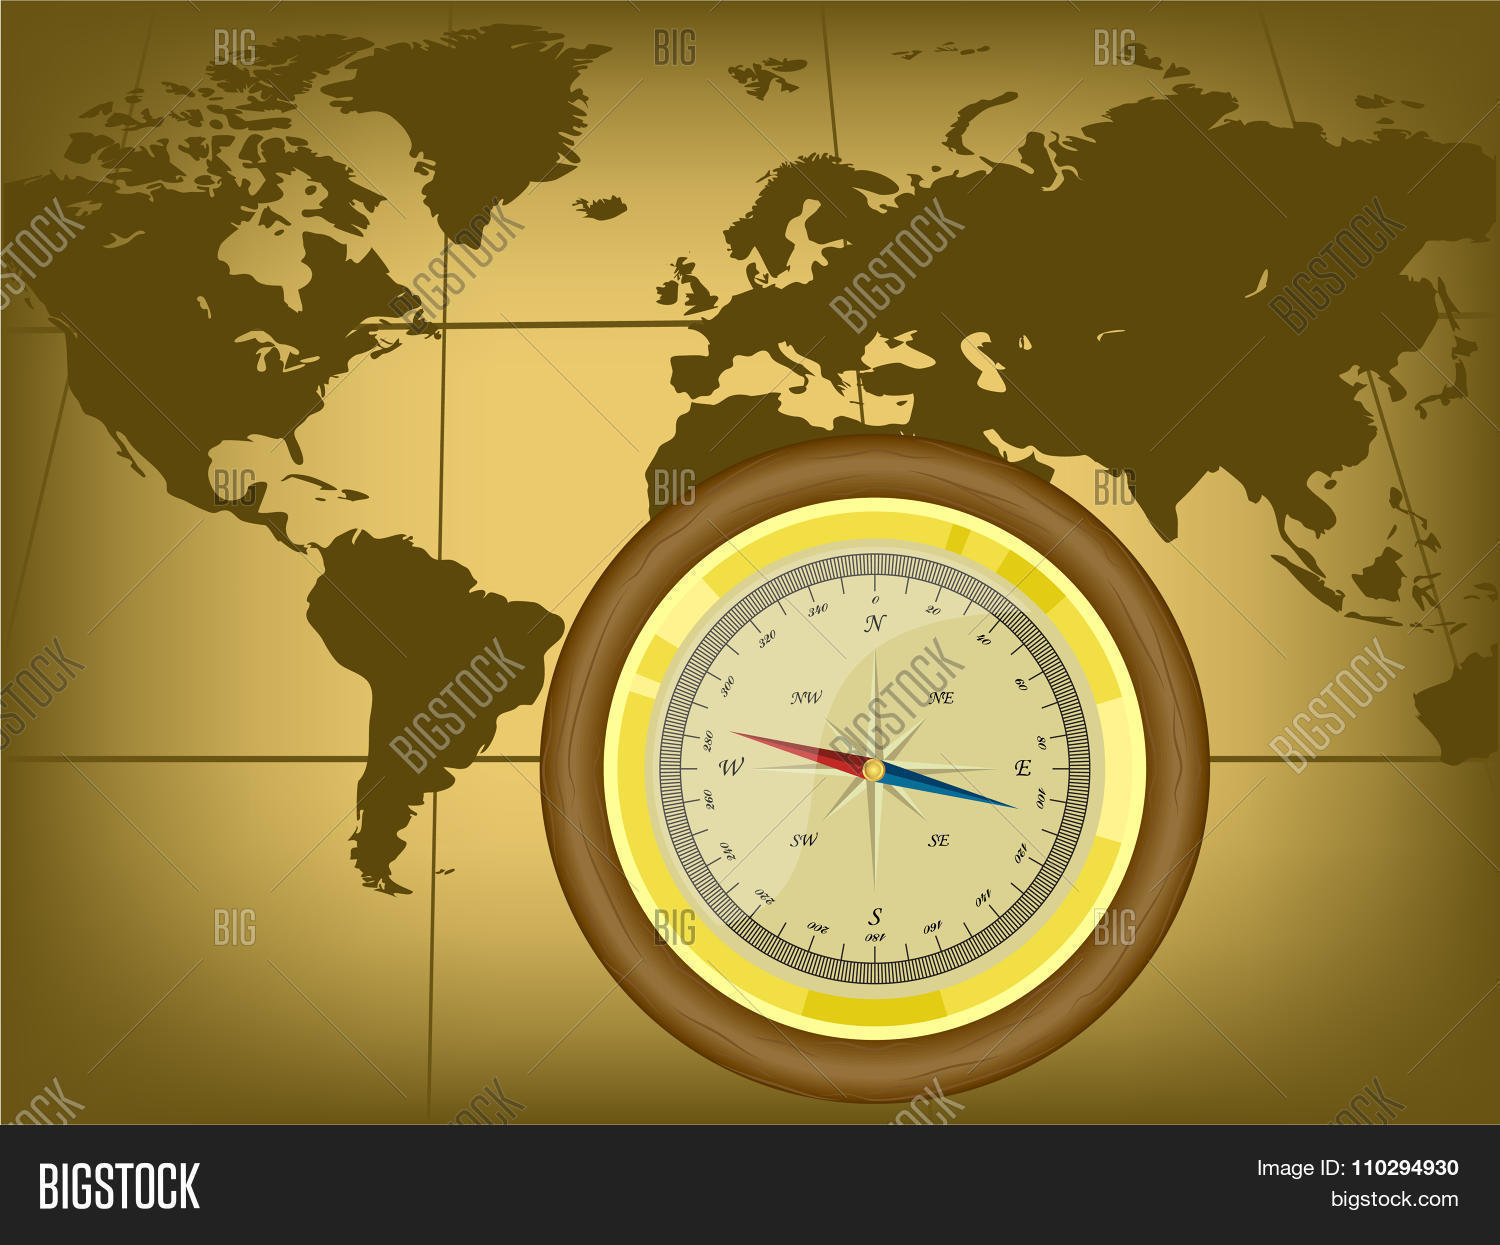 World Map Old Style.Old Style World Map Vector Photo Free Trial Bigstock